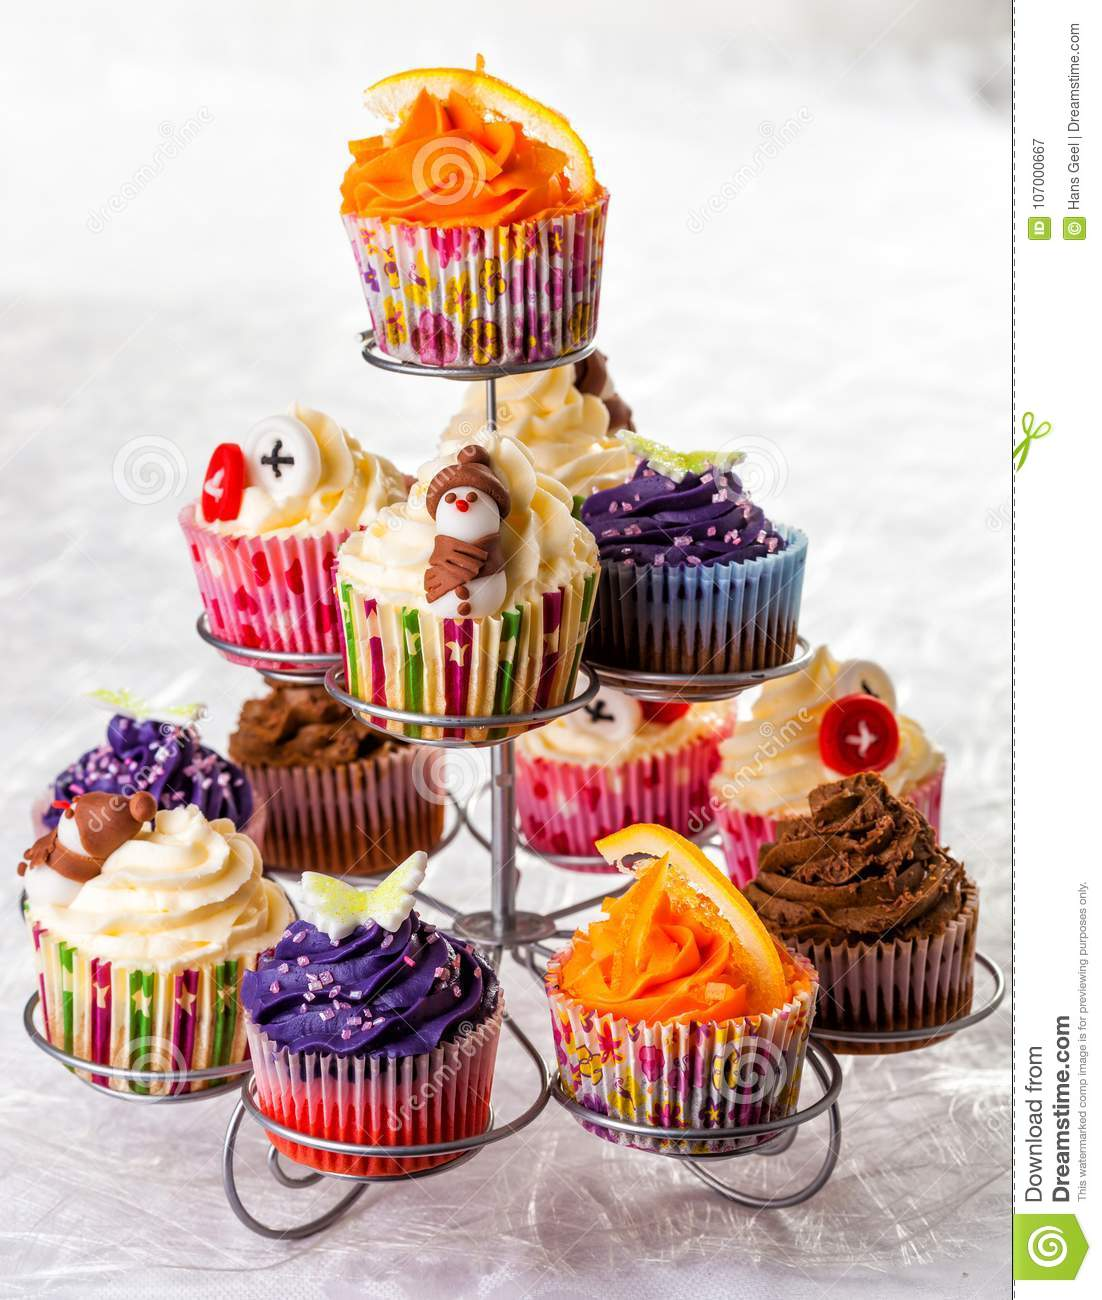 Variety Of Seasonal Cupcakes Placed On A Stand Stock Image Image